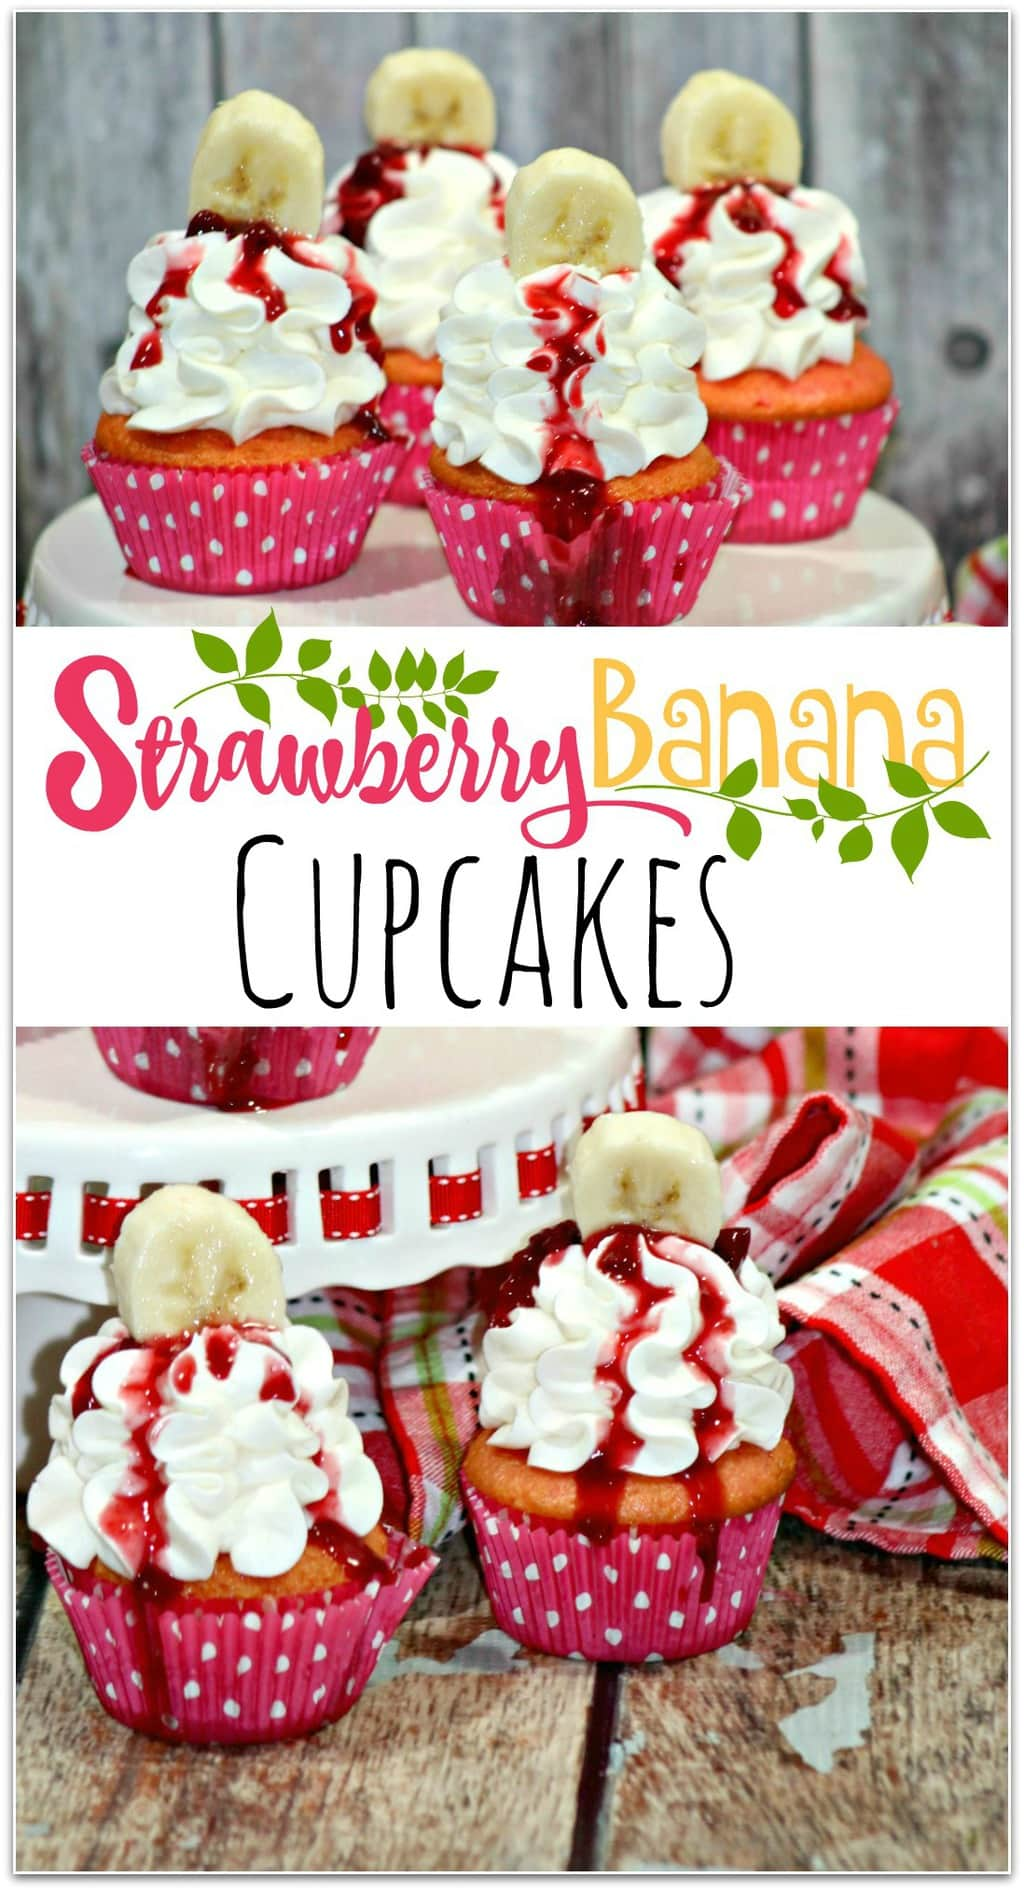 Aren't these strawberry banana cupcakes pretty? They would make a beautiful centerpiece at a Valentine's Day party! When I'm asked to bring food to a school party or a friend's get together, I tend to go with a dessert, and cupcakes are such an easy recipe! I don't need to worry about spoons or forks, which makes things even easier. Though these cupcakes work for any party, I think they would be so cute surrounded by little conversation hearts, don't you?